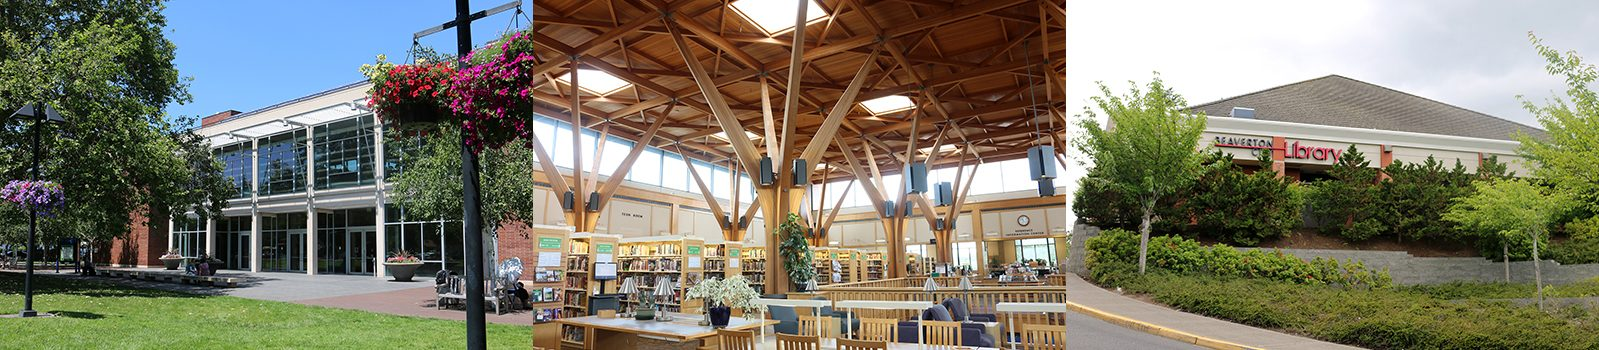 Beaverton Library Foundation